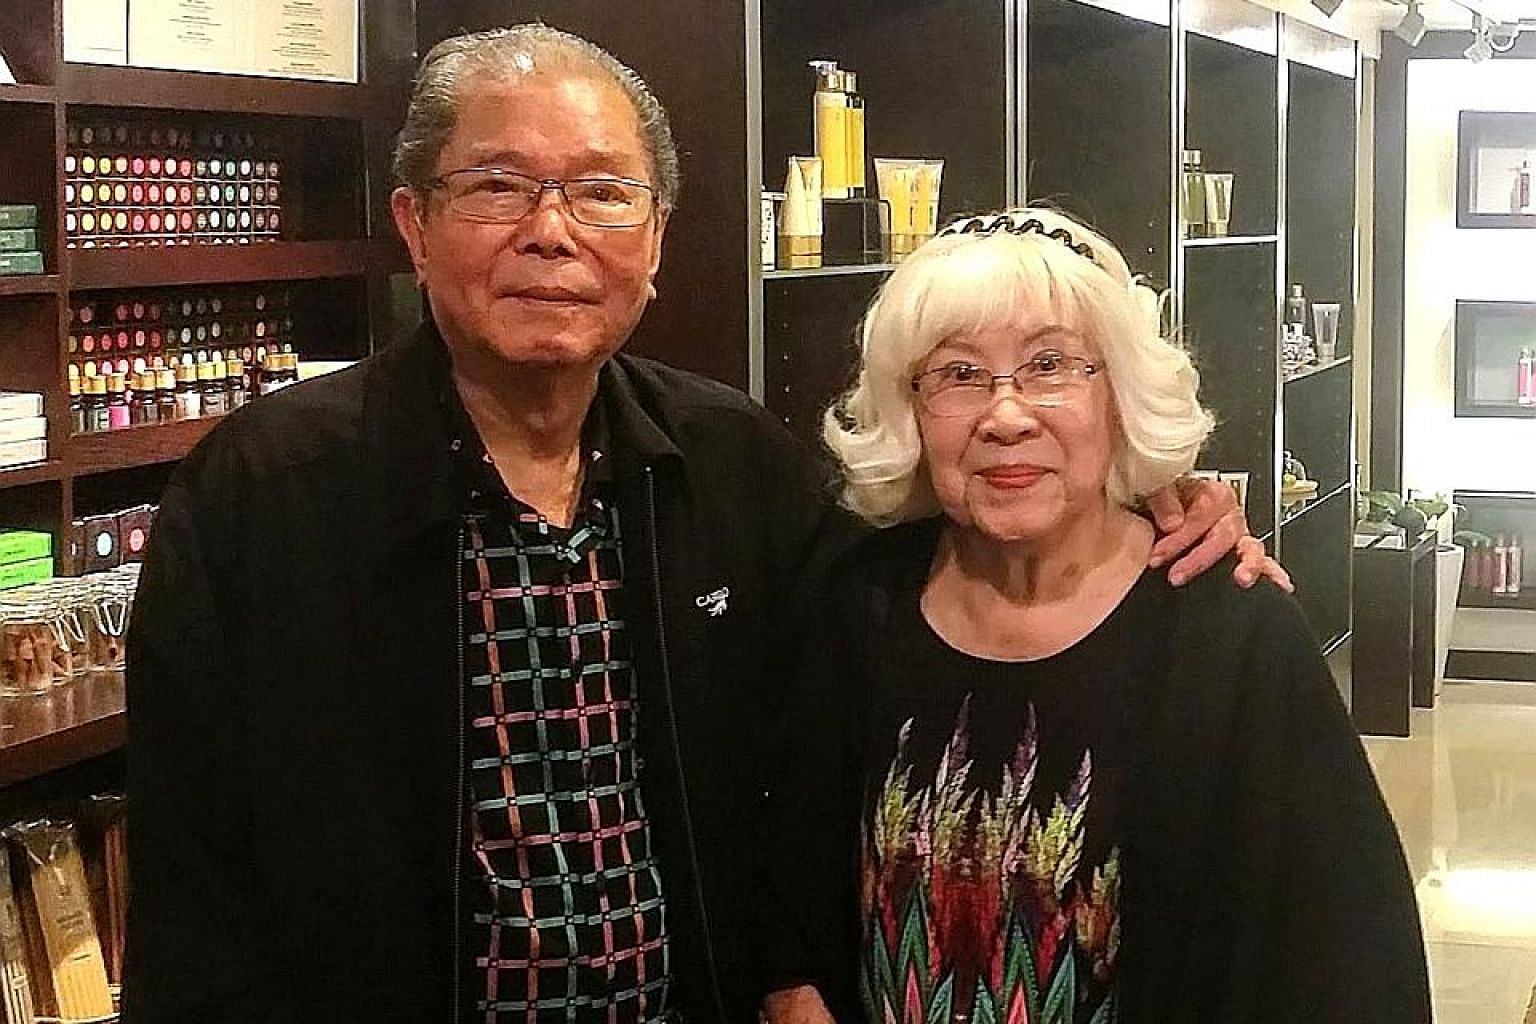 Datuk Tan Hian Tsin and his late wife Tsao Sui Lan set up the Crocodile Foundation in 2002 to provide grants to support community projects. Crocodile was founded by Mr Tan and his eldest brother in 1947, and it used vans to advertise its products in